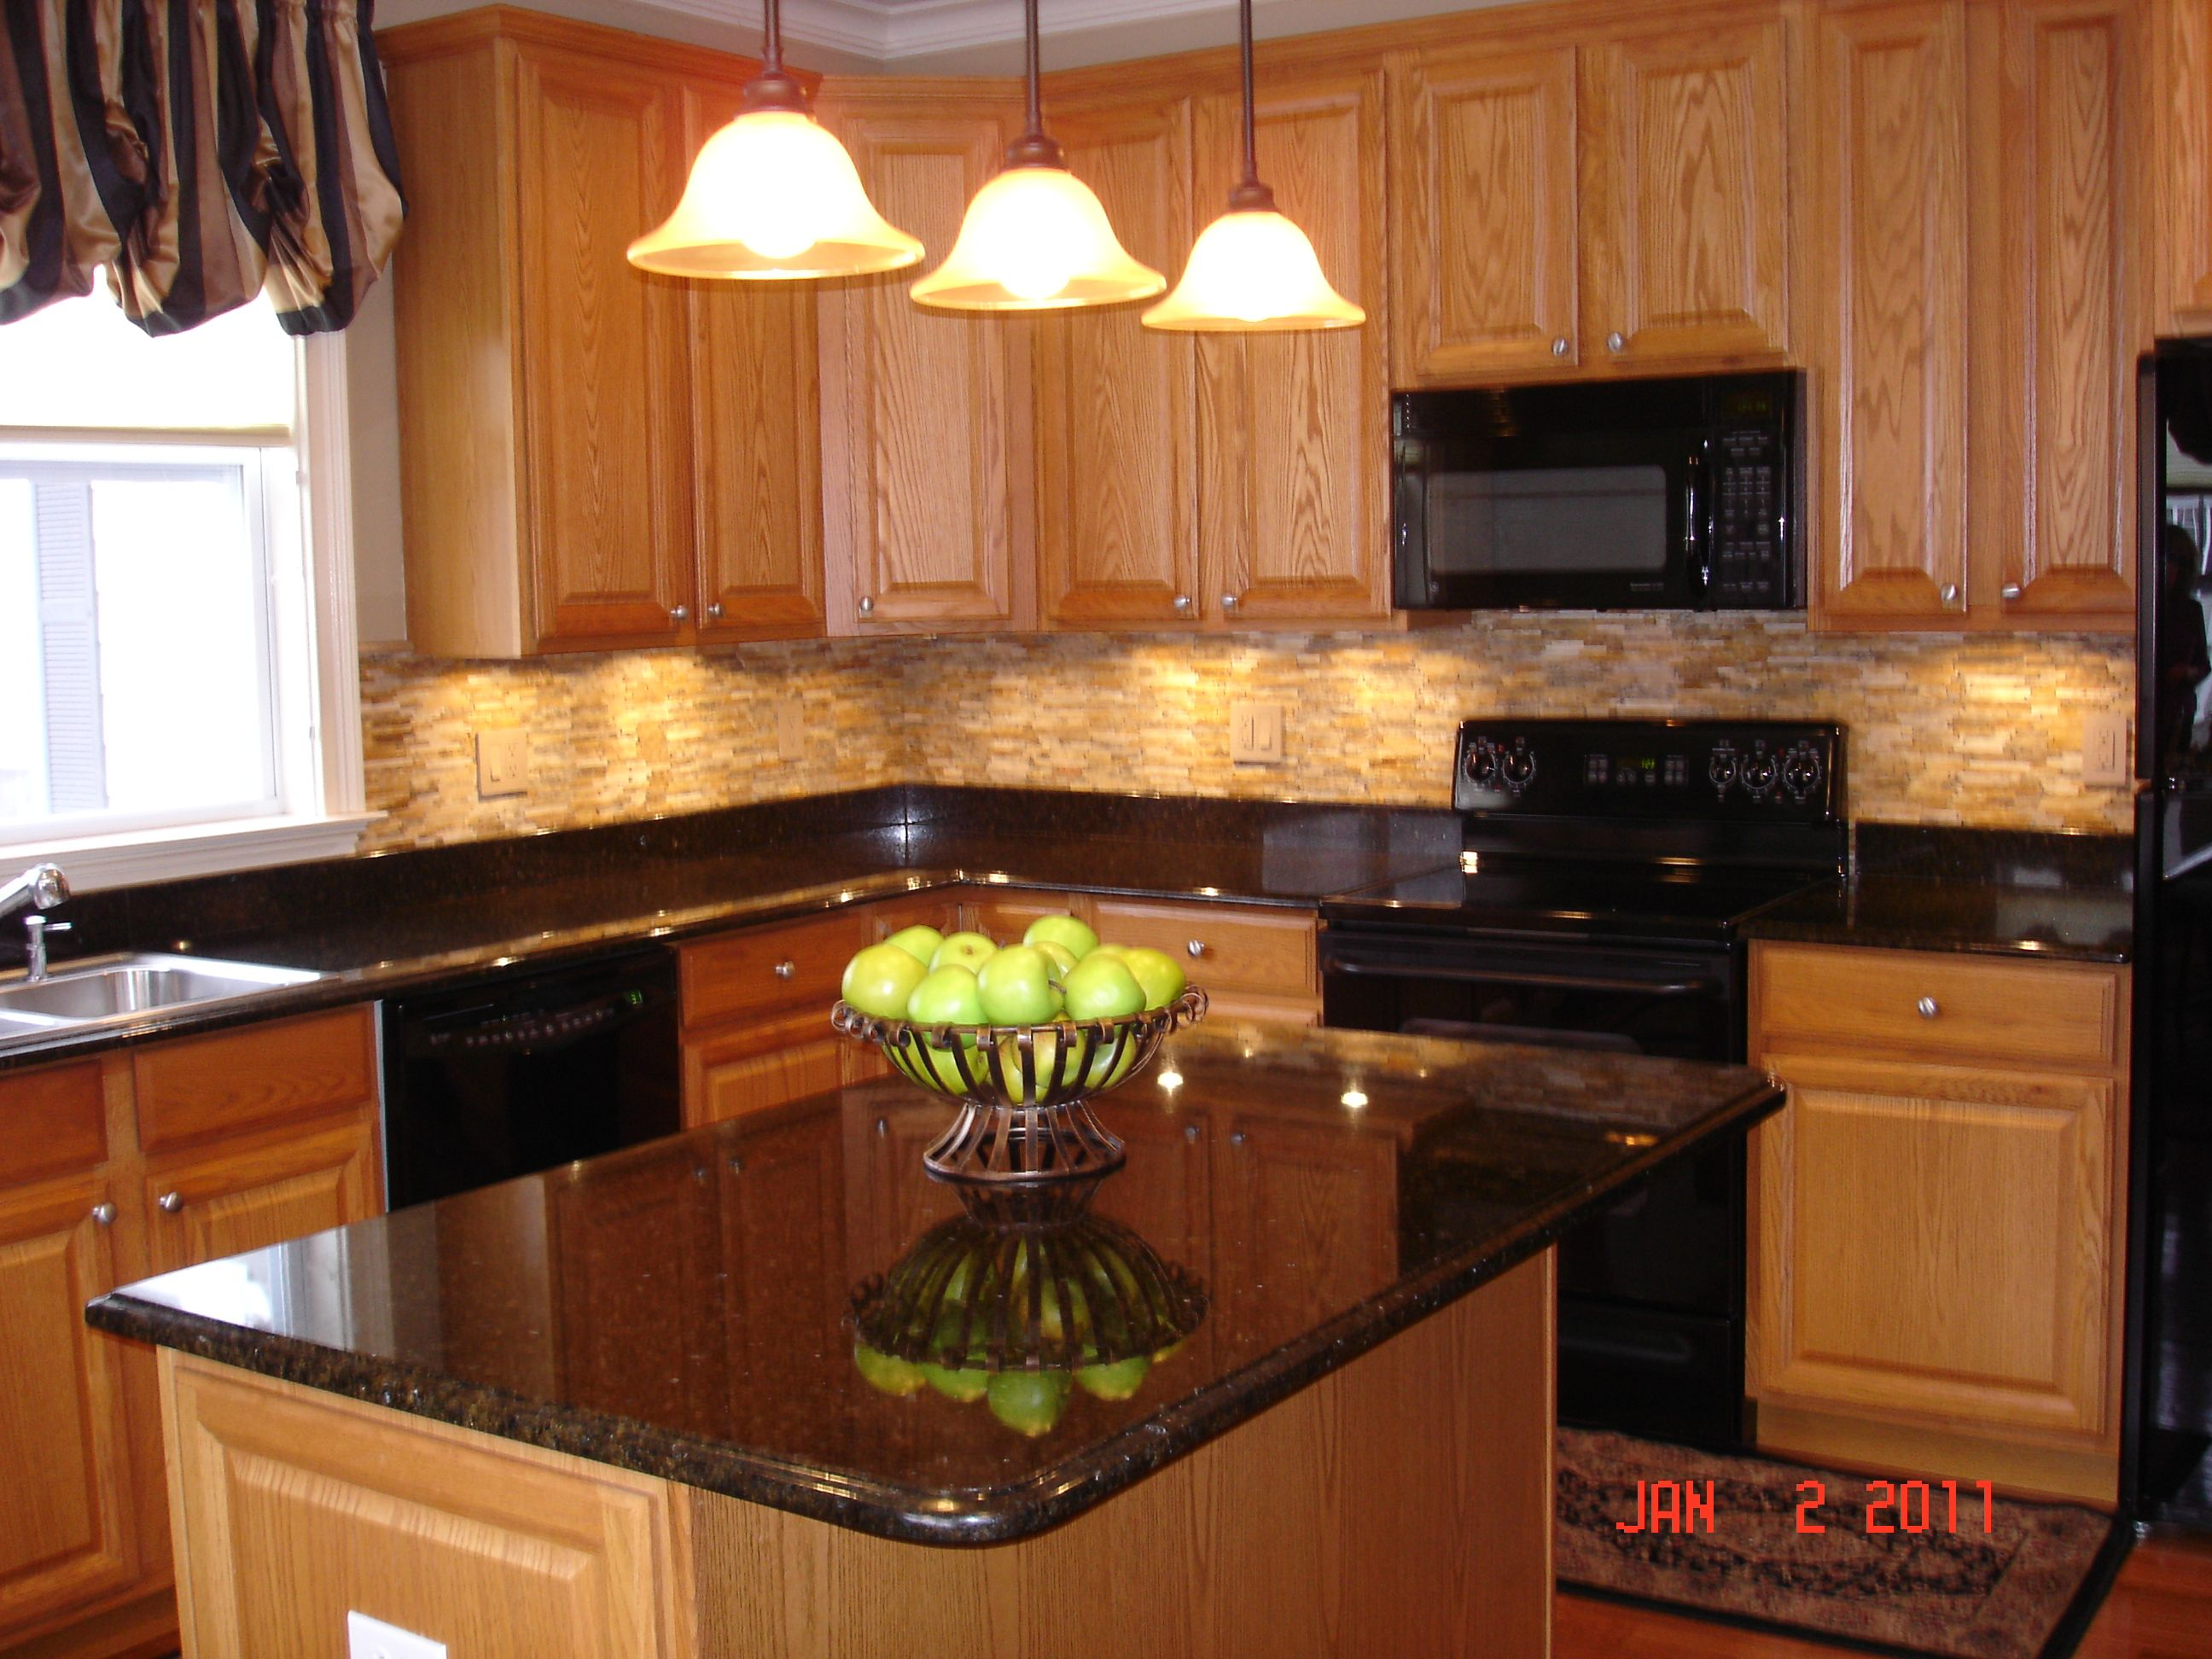 Kitchen Cabinets And Countertops Mandoline Oak Wood Cabinetstogo With Under Cabinet Lighting